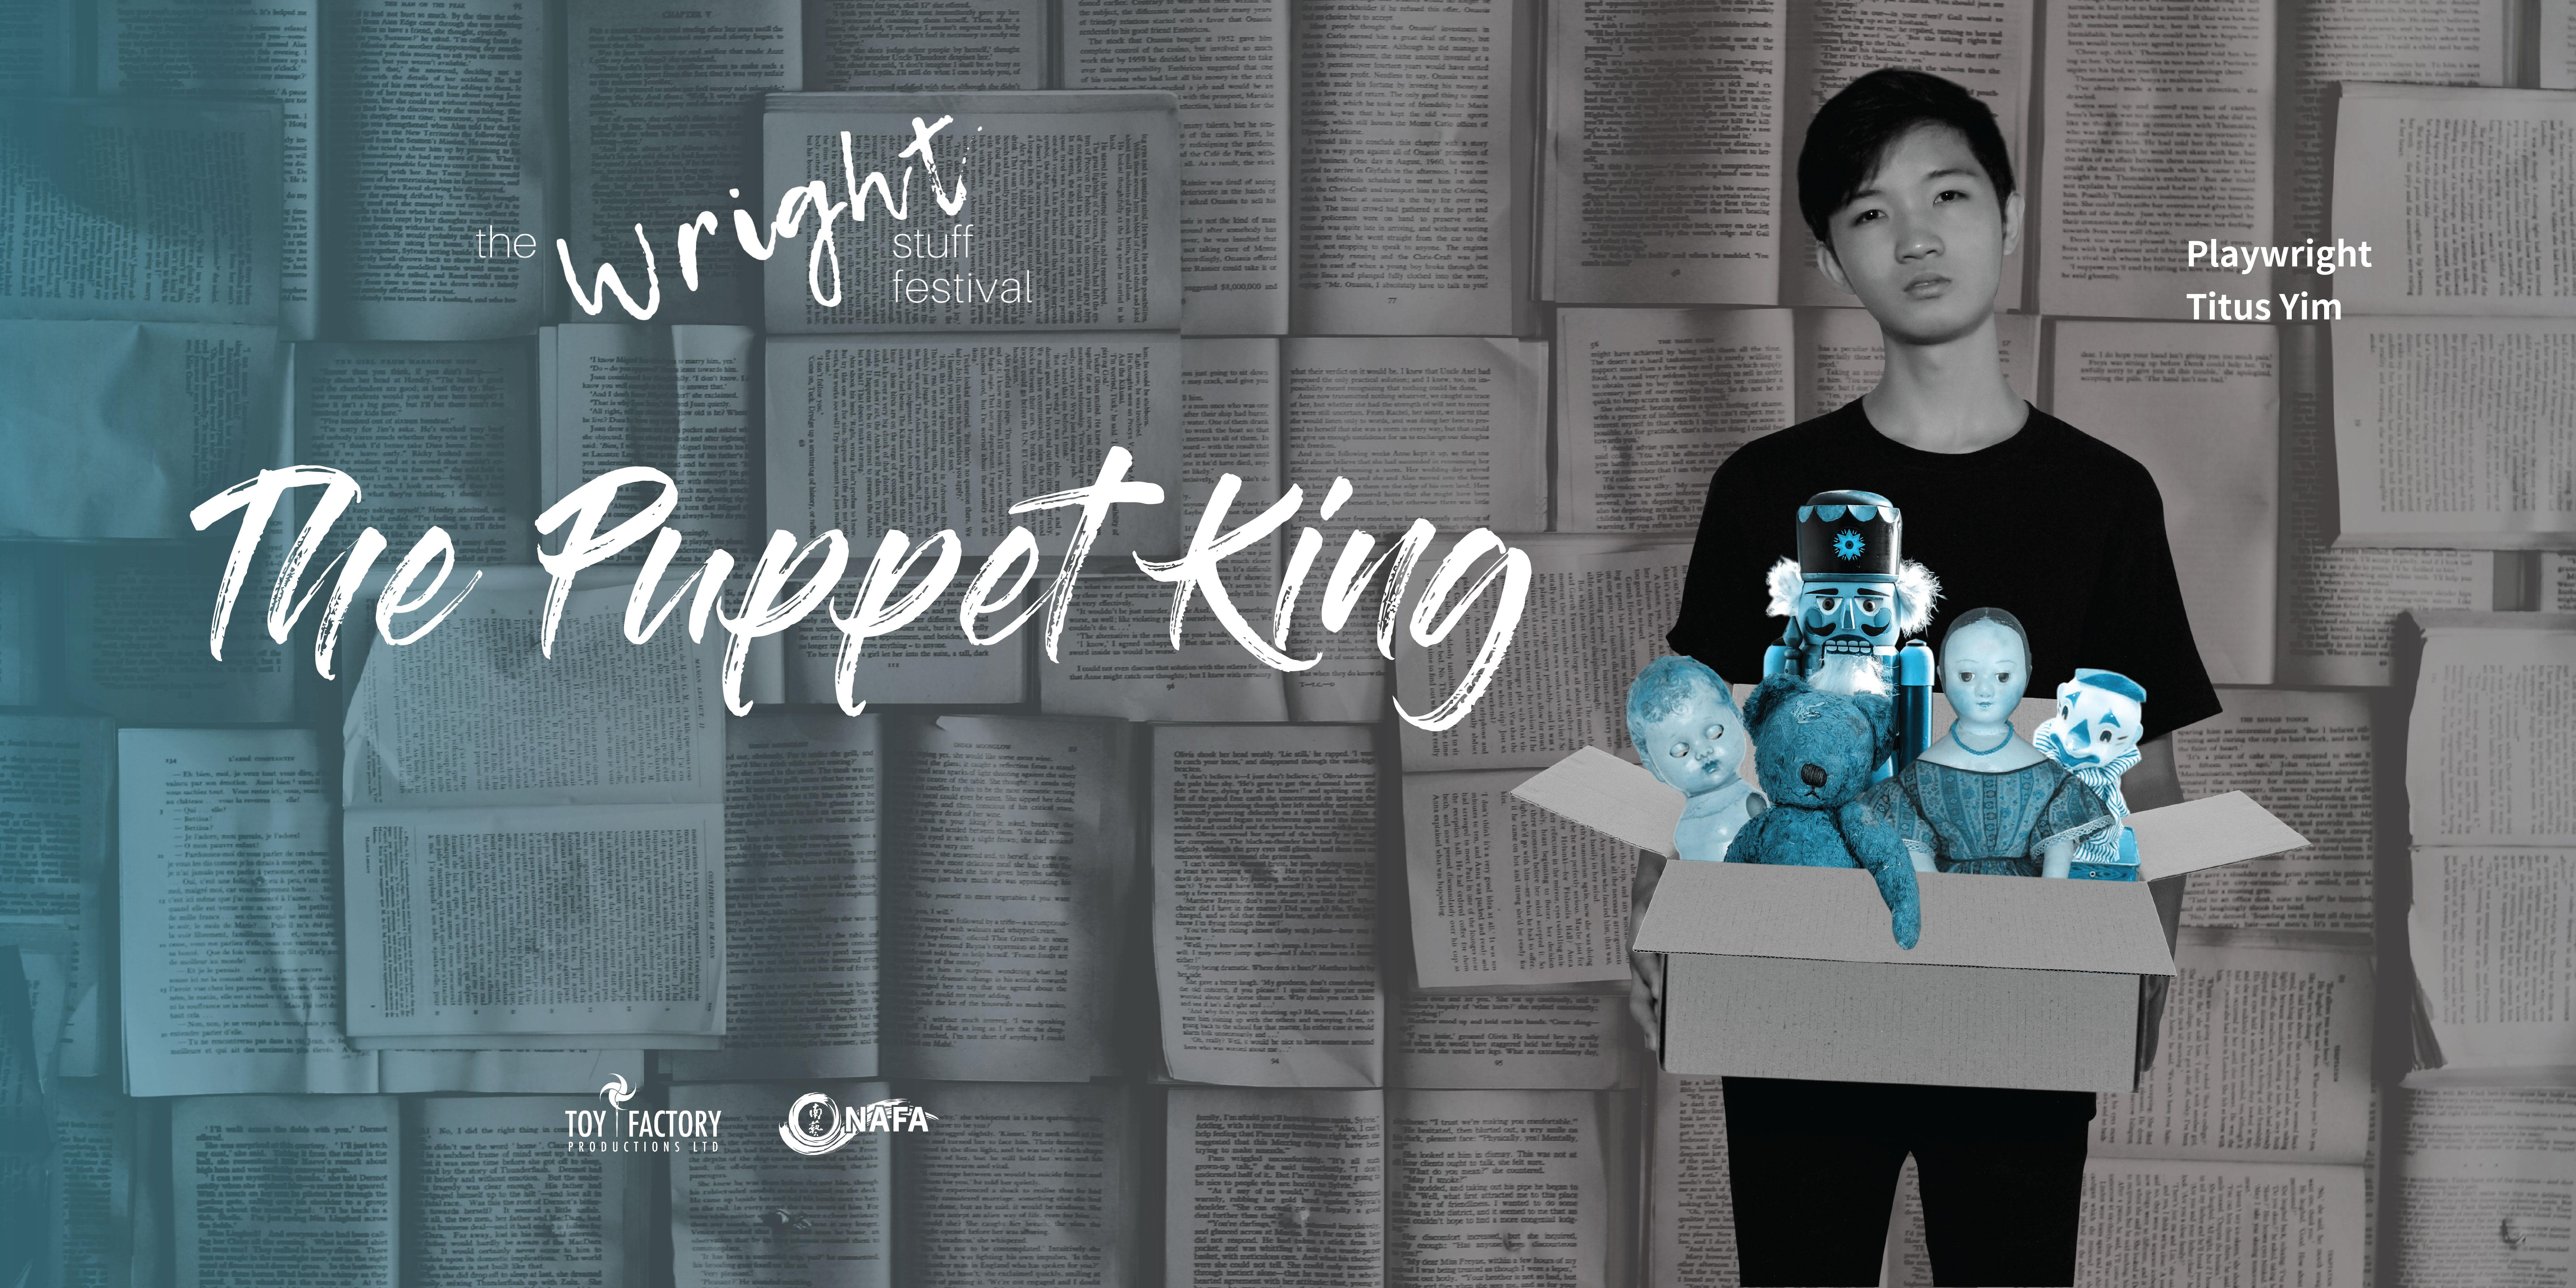 The Wright Stuff Festival - The Puppet King